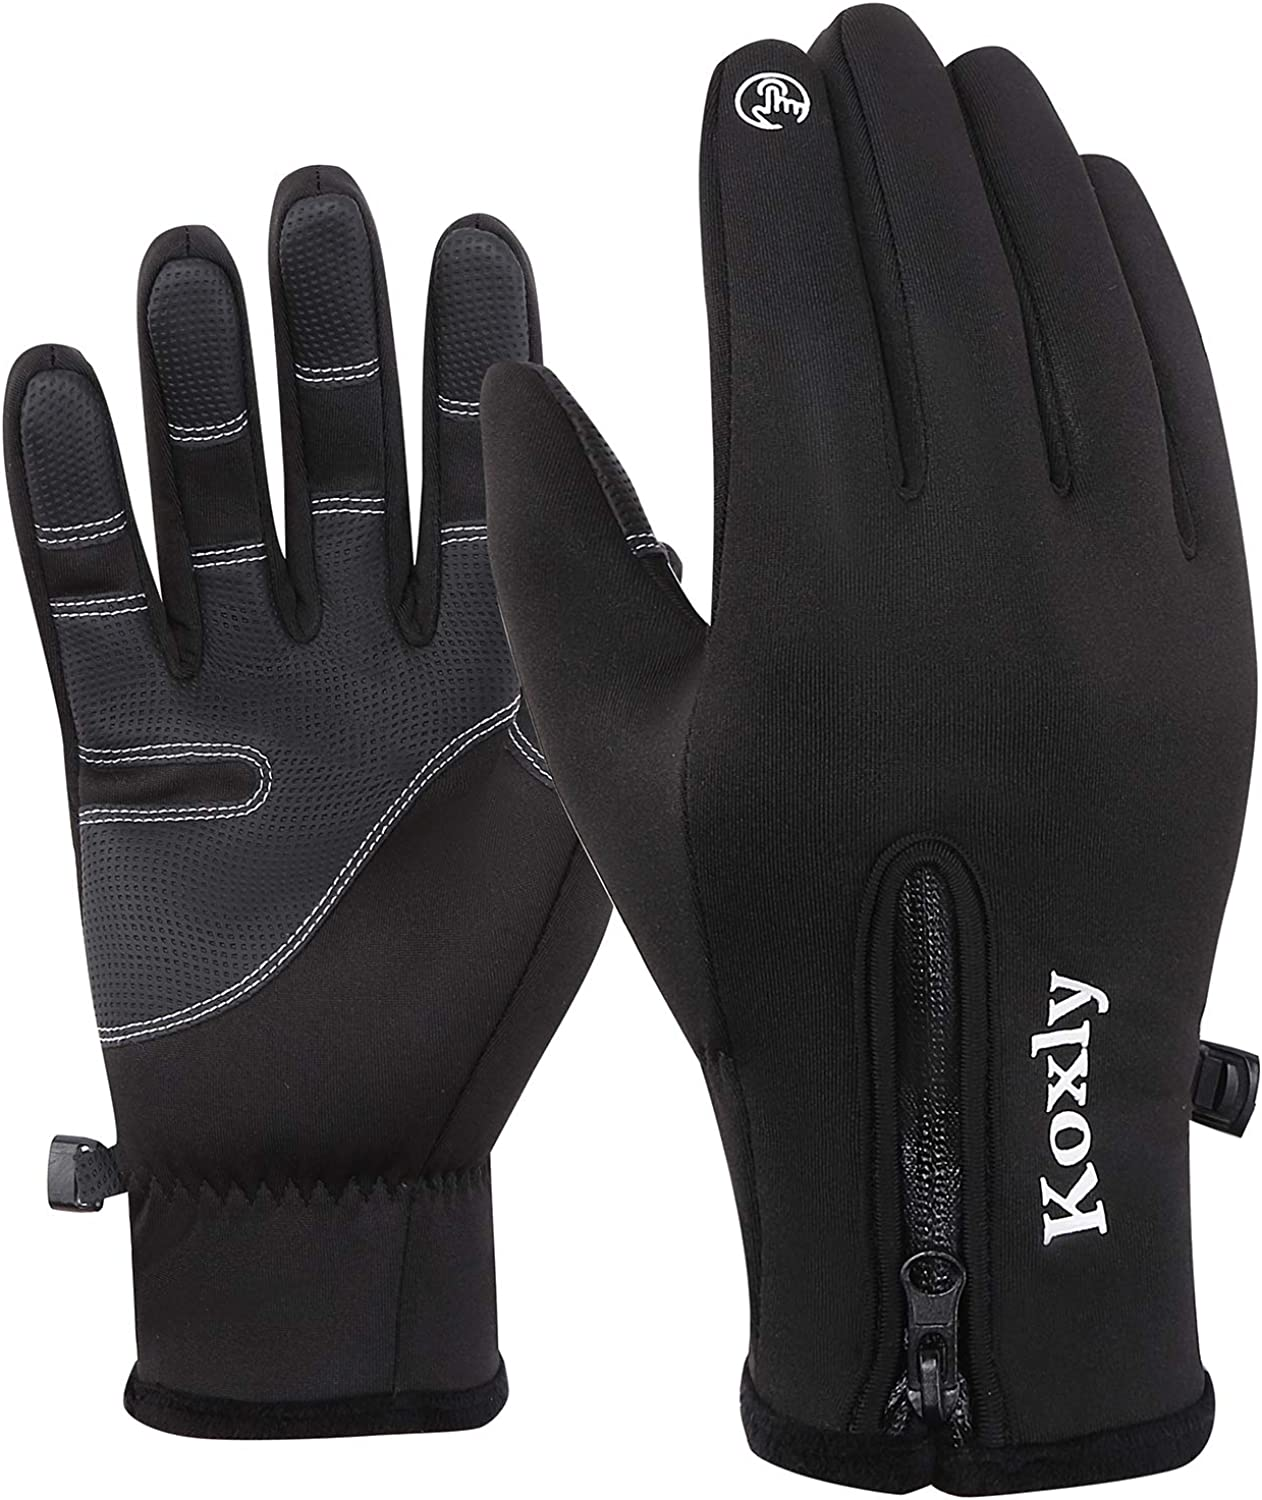 Our shop most popular Koxly Winter Gloves Touch Screen Insulated Fingers A 40% OFF Cheap Sale Warm